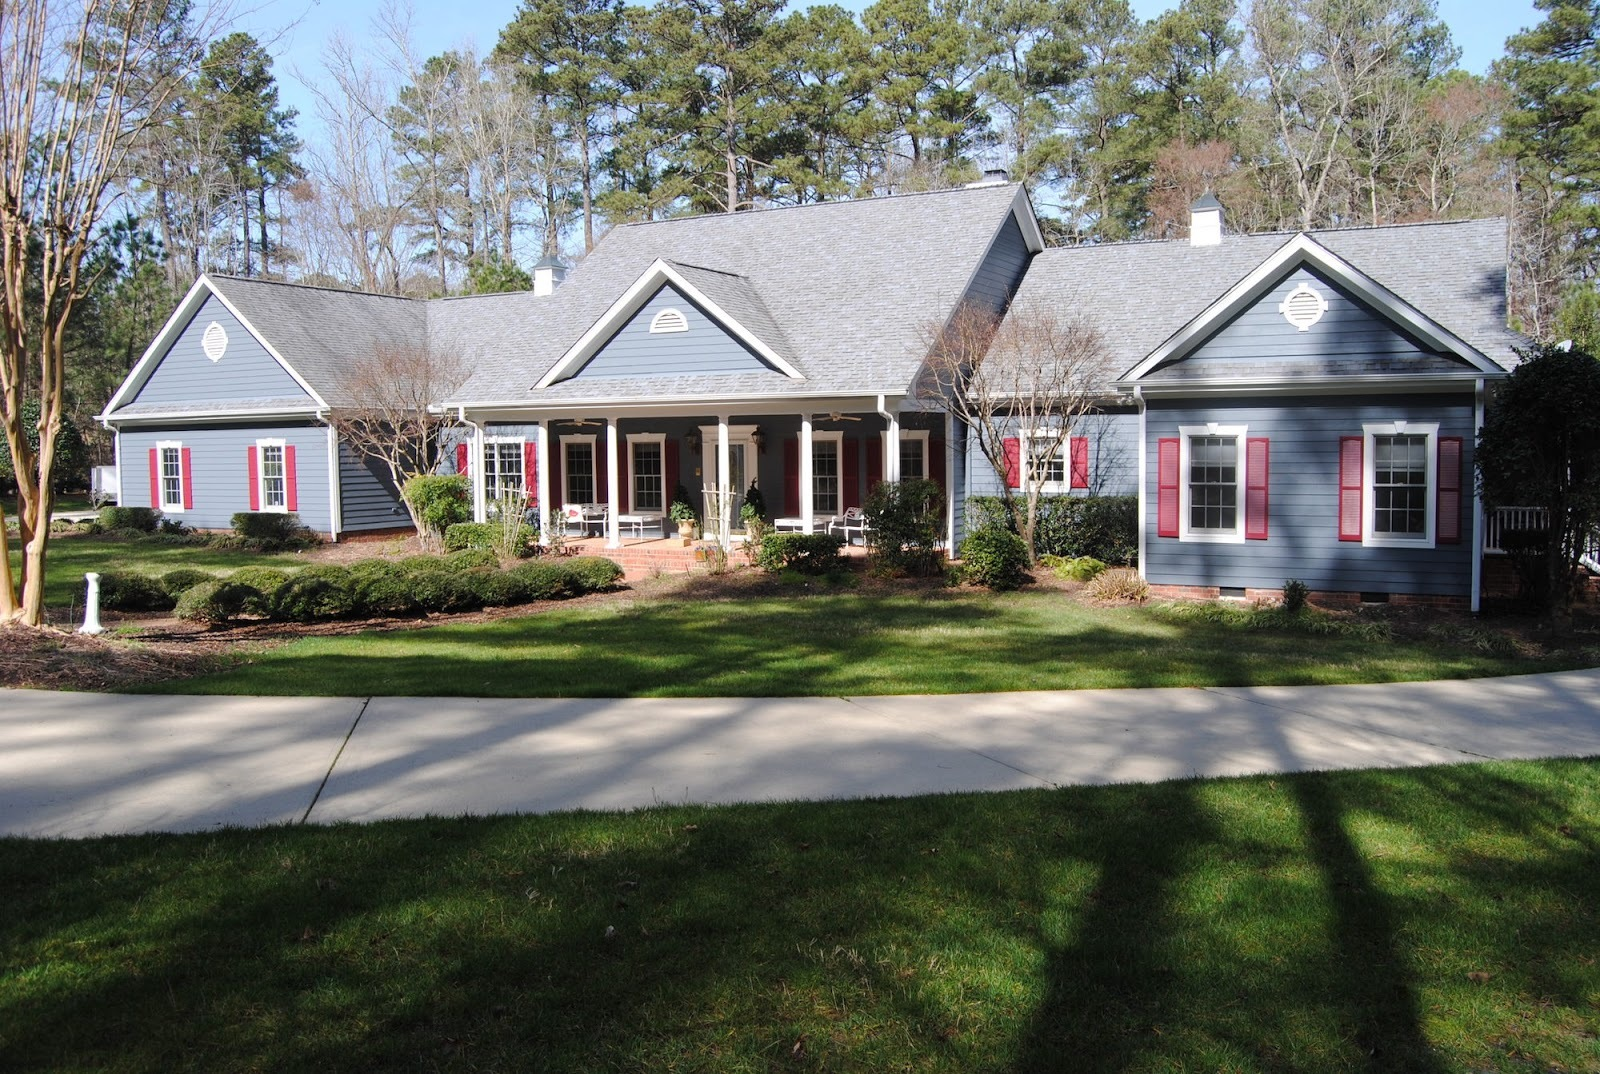 House in Raleigh with vinyl siding